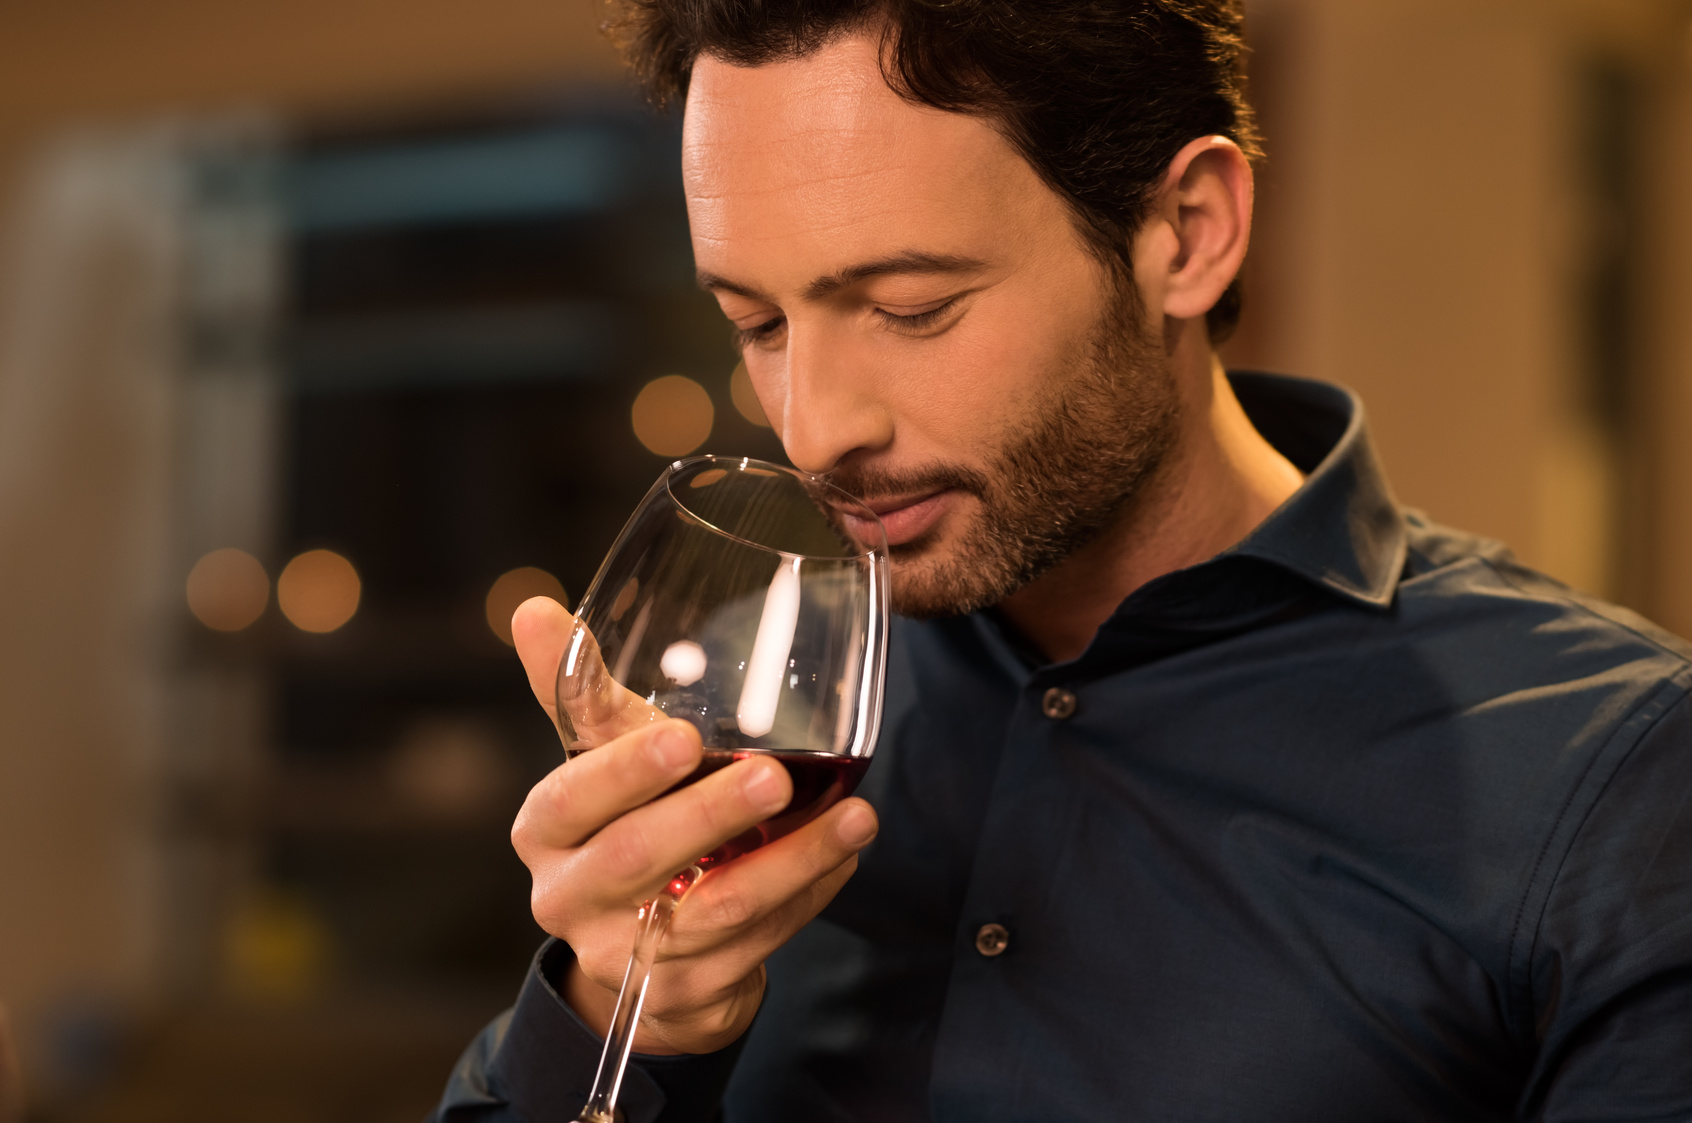 Handsome young man smelling red wine before drinking it. Young man drinking red wine in a luxury restaurant. Handsome young man tasting a glass of red wine during dinner.